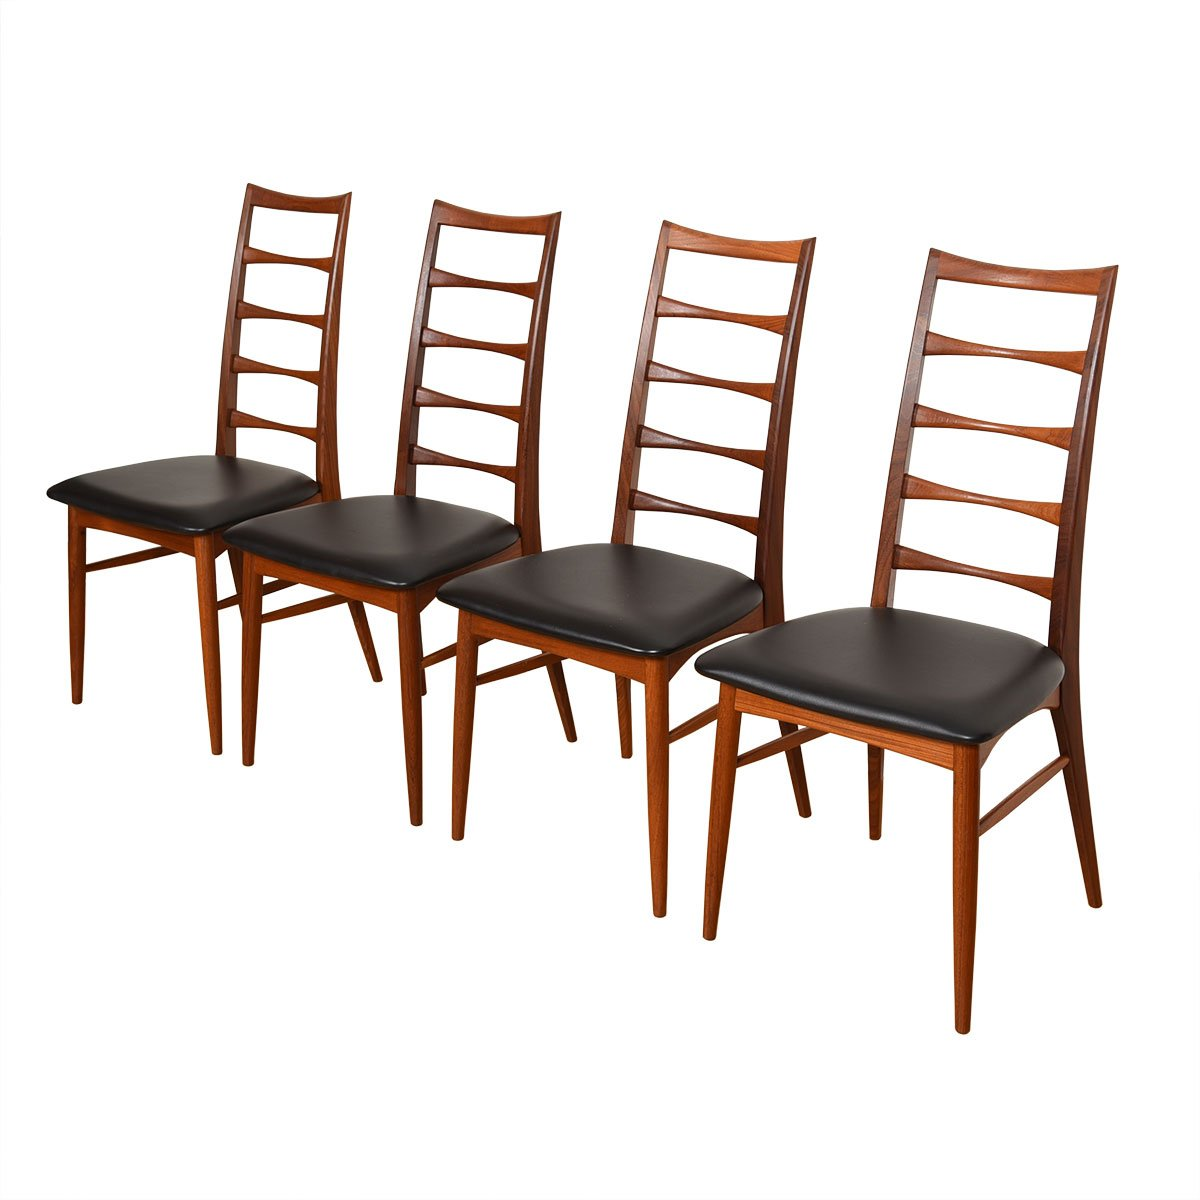 Set of 4-8 Koefoed Hornslet Danish Teak Dining Chairs